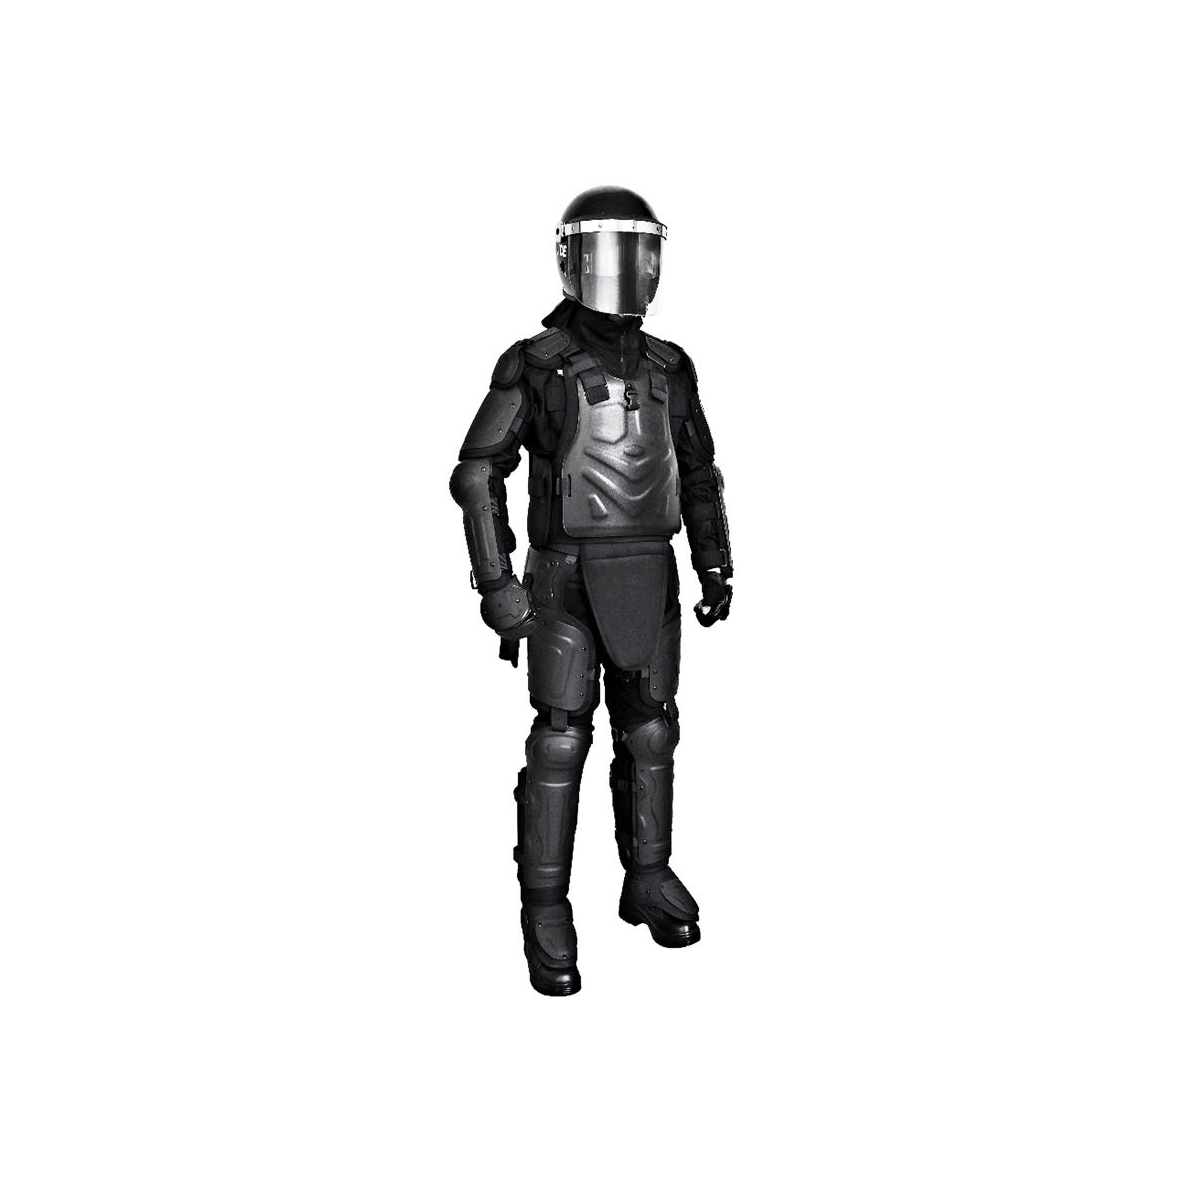 TURBO-X Riot Suit